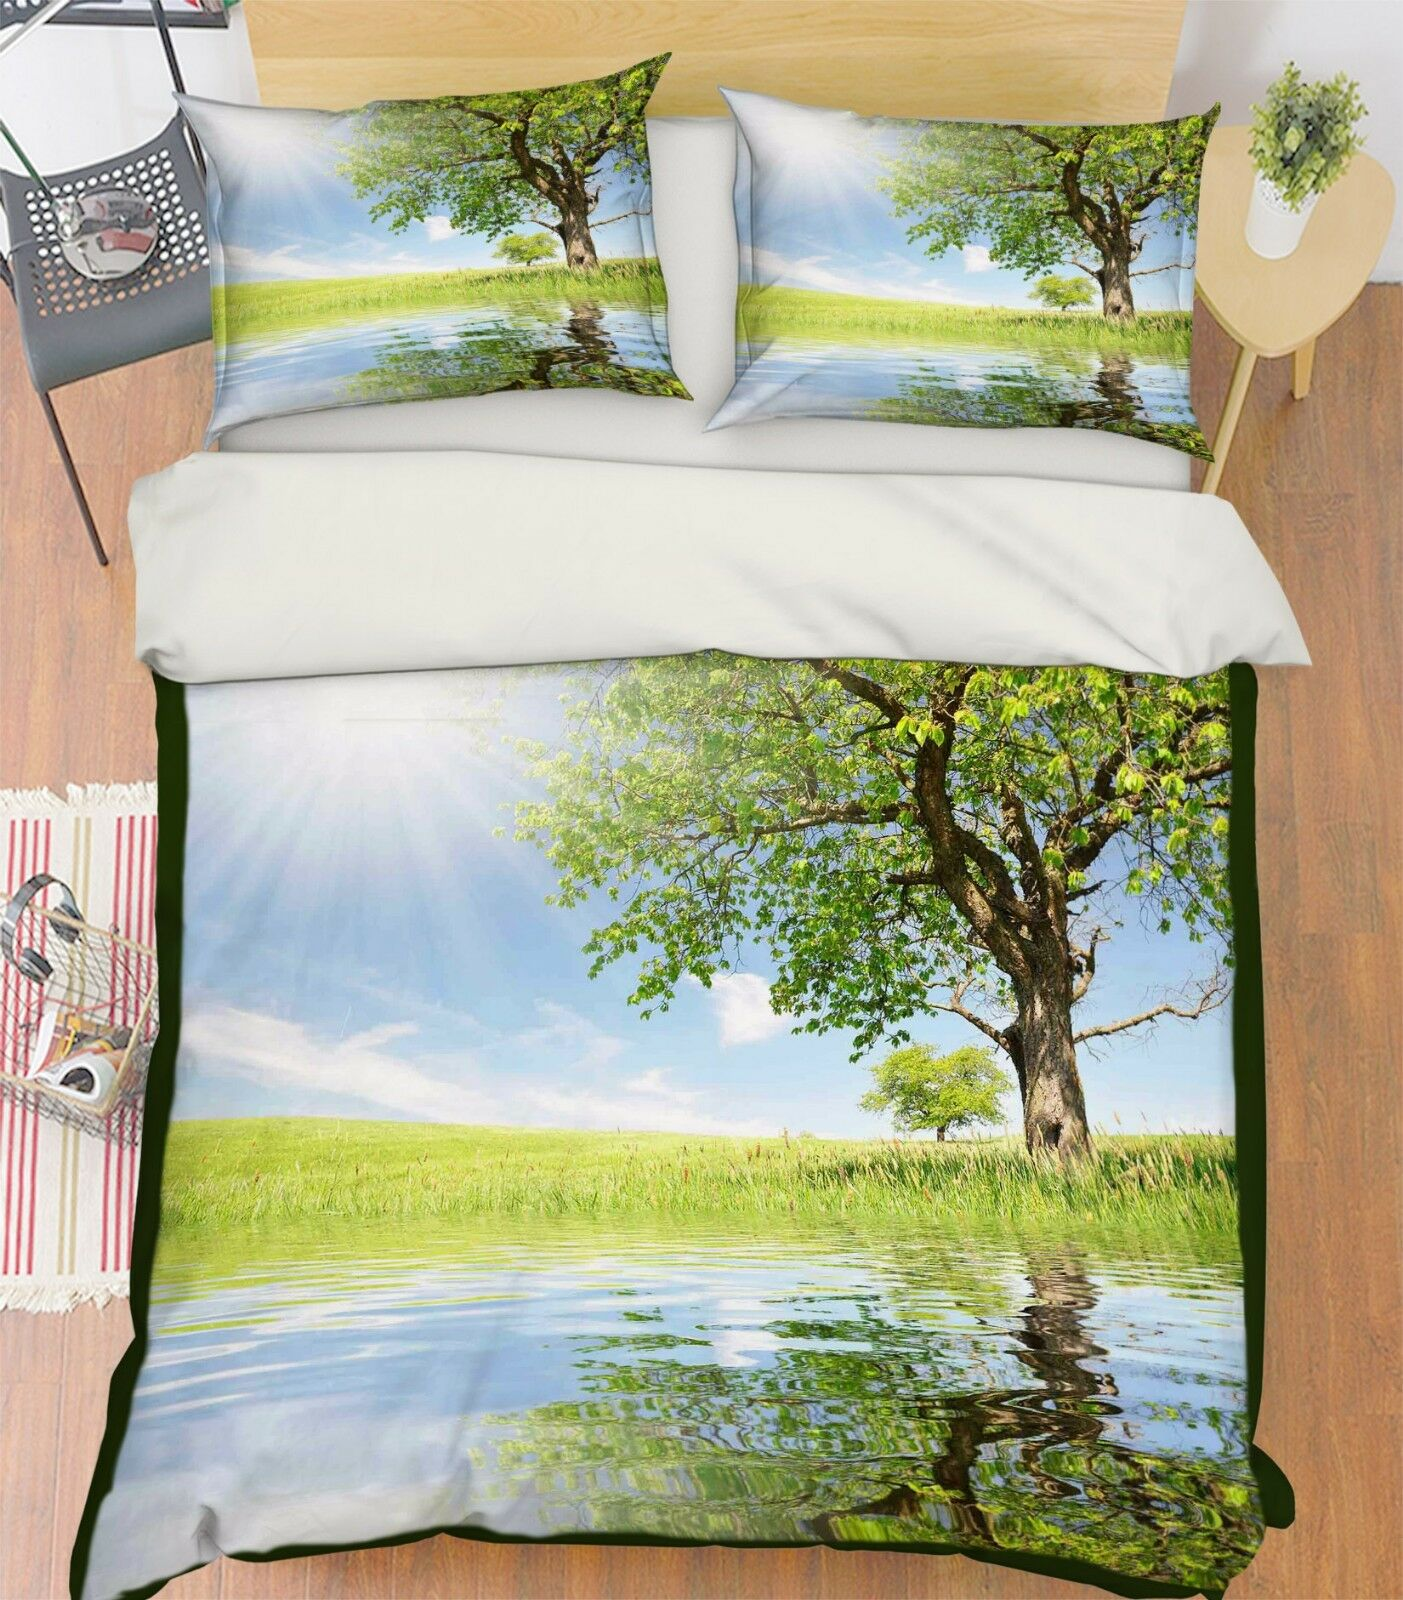 3D Sunny Grass 688 Bed Pillowcases Quilt Duvet Cover Set Single Queen AU Carly